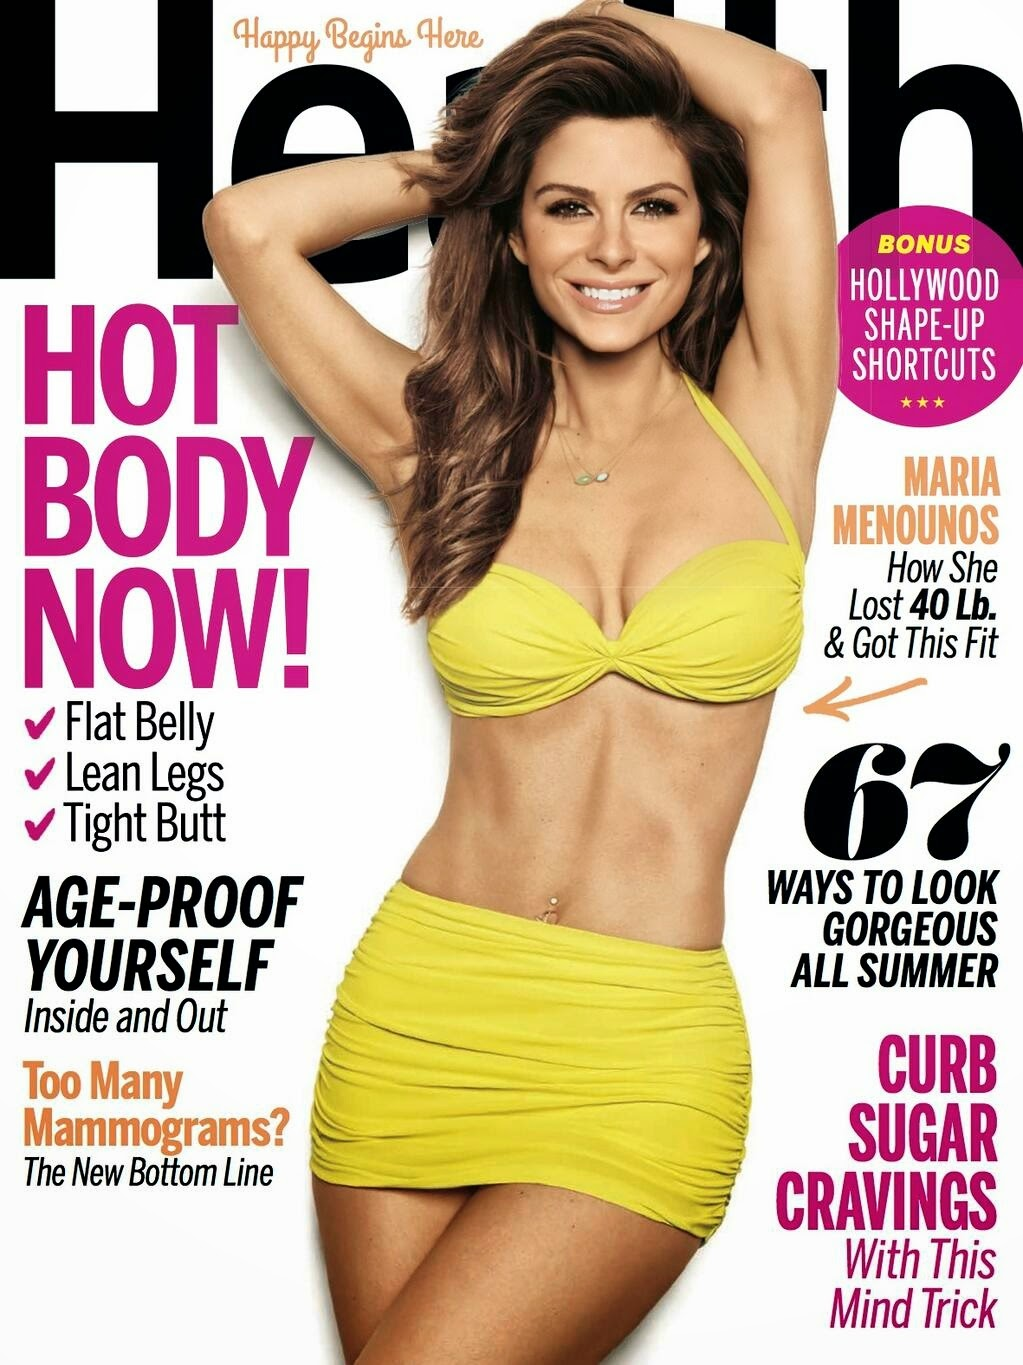 Maria Menounos For Health Magazine, July 2014